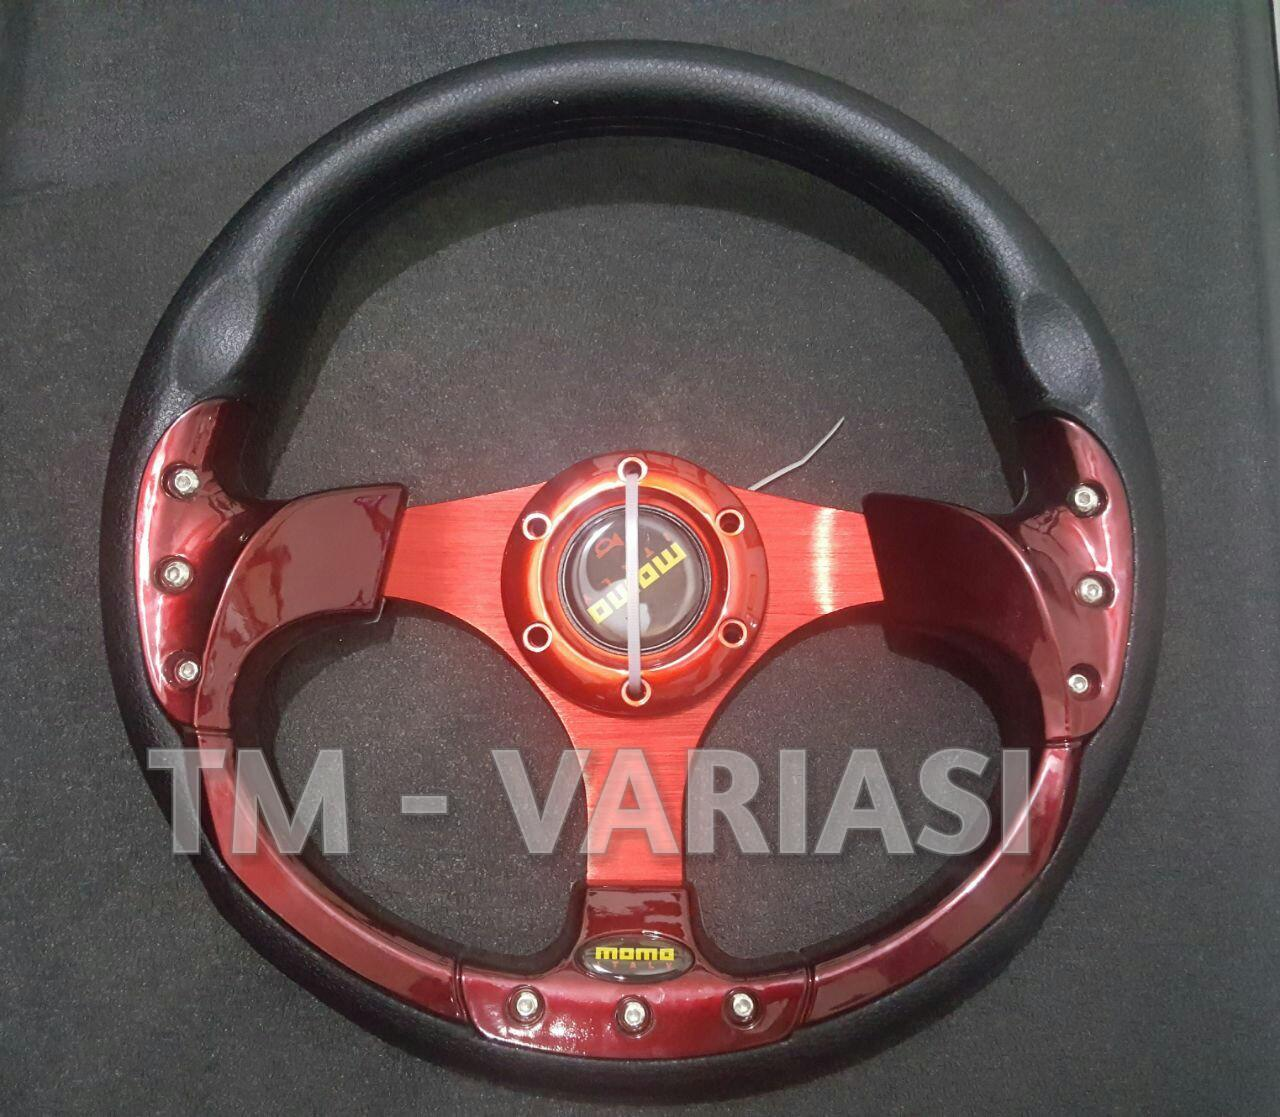 Fitur Stir Racing Import Drifting Carbon Celong 14 Inchi List Biru Momo 13 Merah Motif Rendah Universal